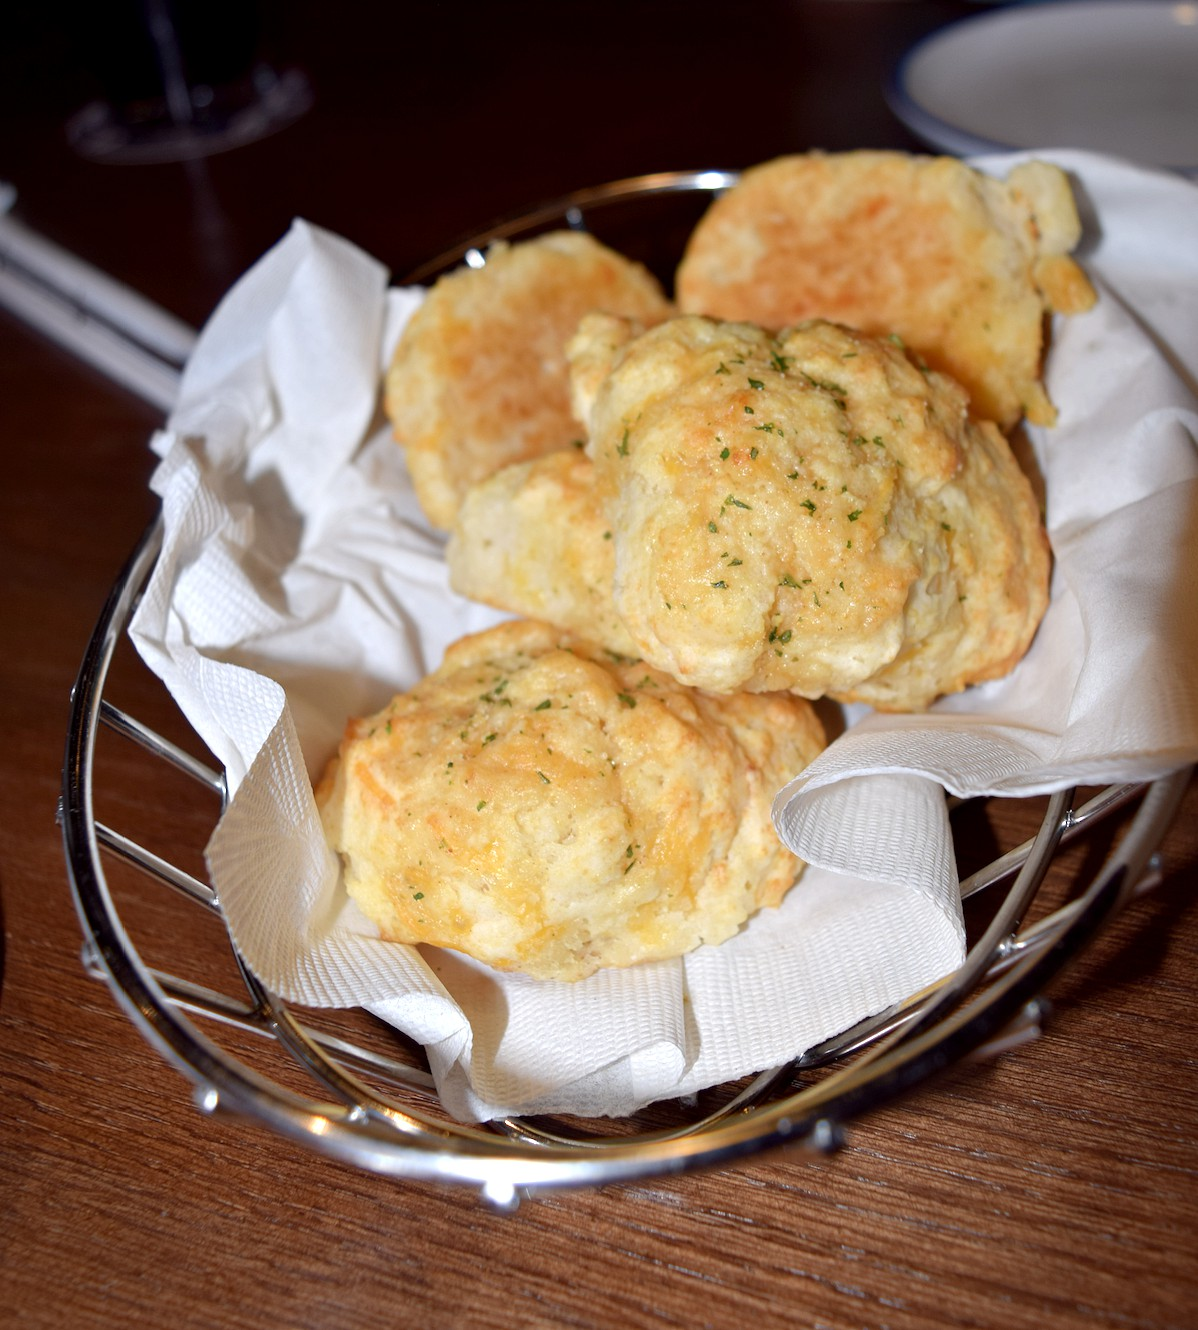 These cheesy biscuits starters from Red Lobster in Manassas, Virginia are my faves!